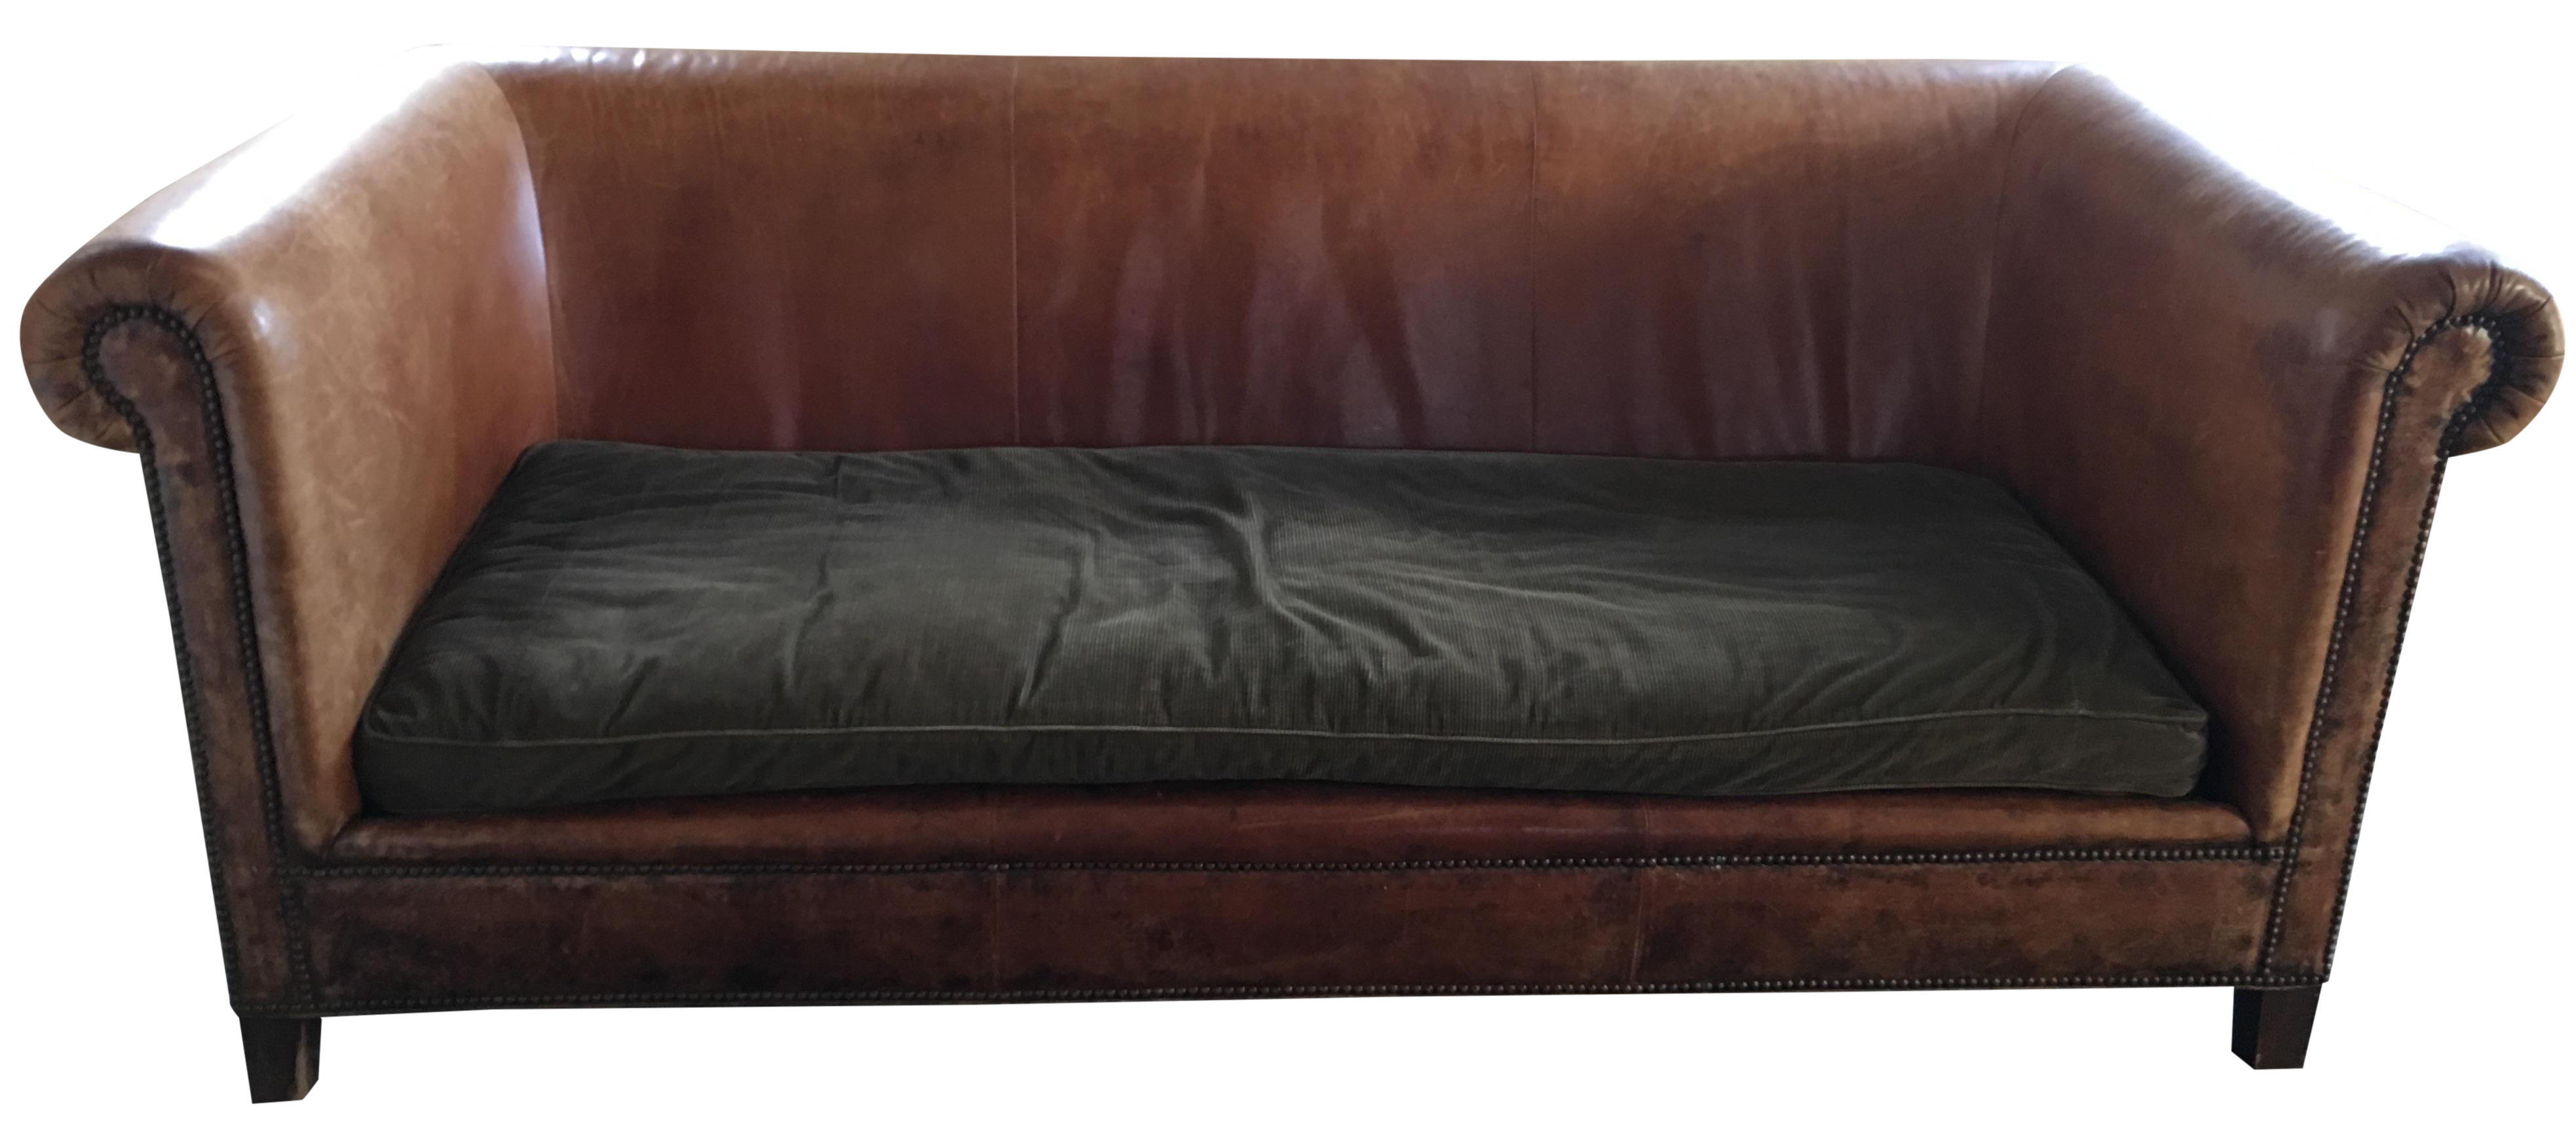 Perfect Leather Ralph Lauren Couch On Chairish.com